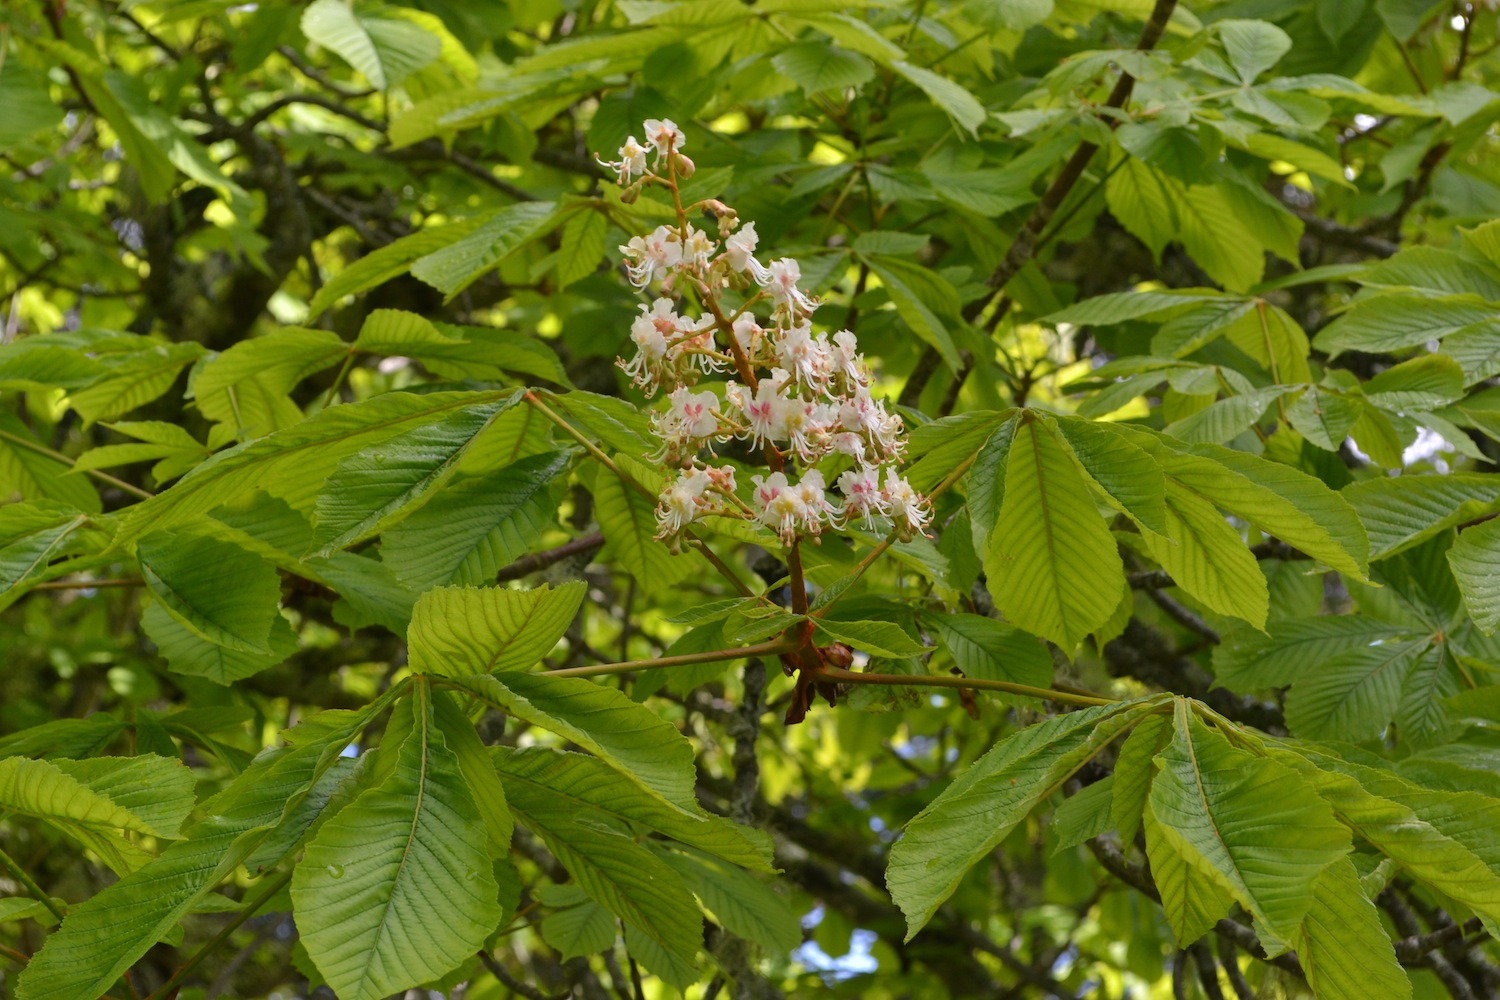 First blooms on the Horse chestnut, taken June 3, 2015